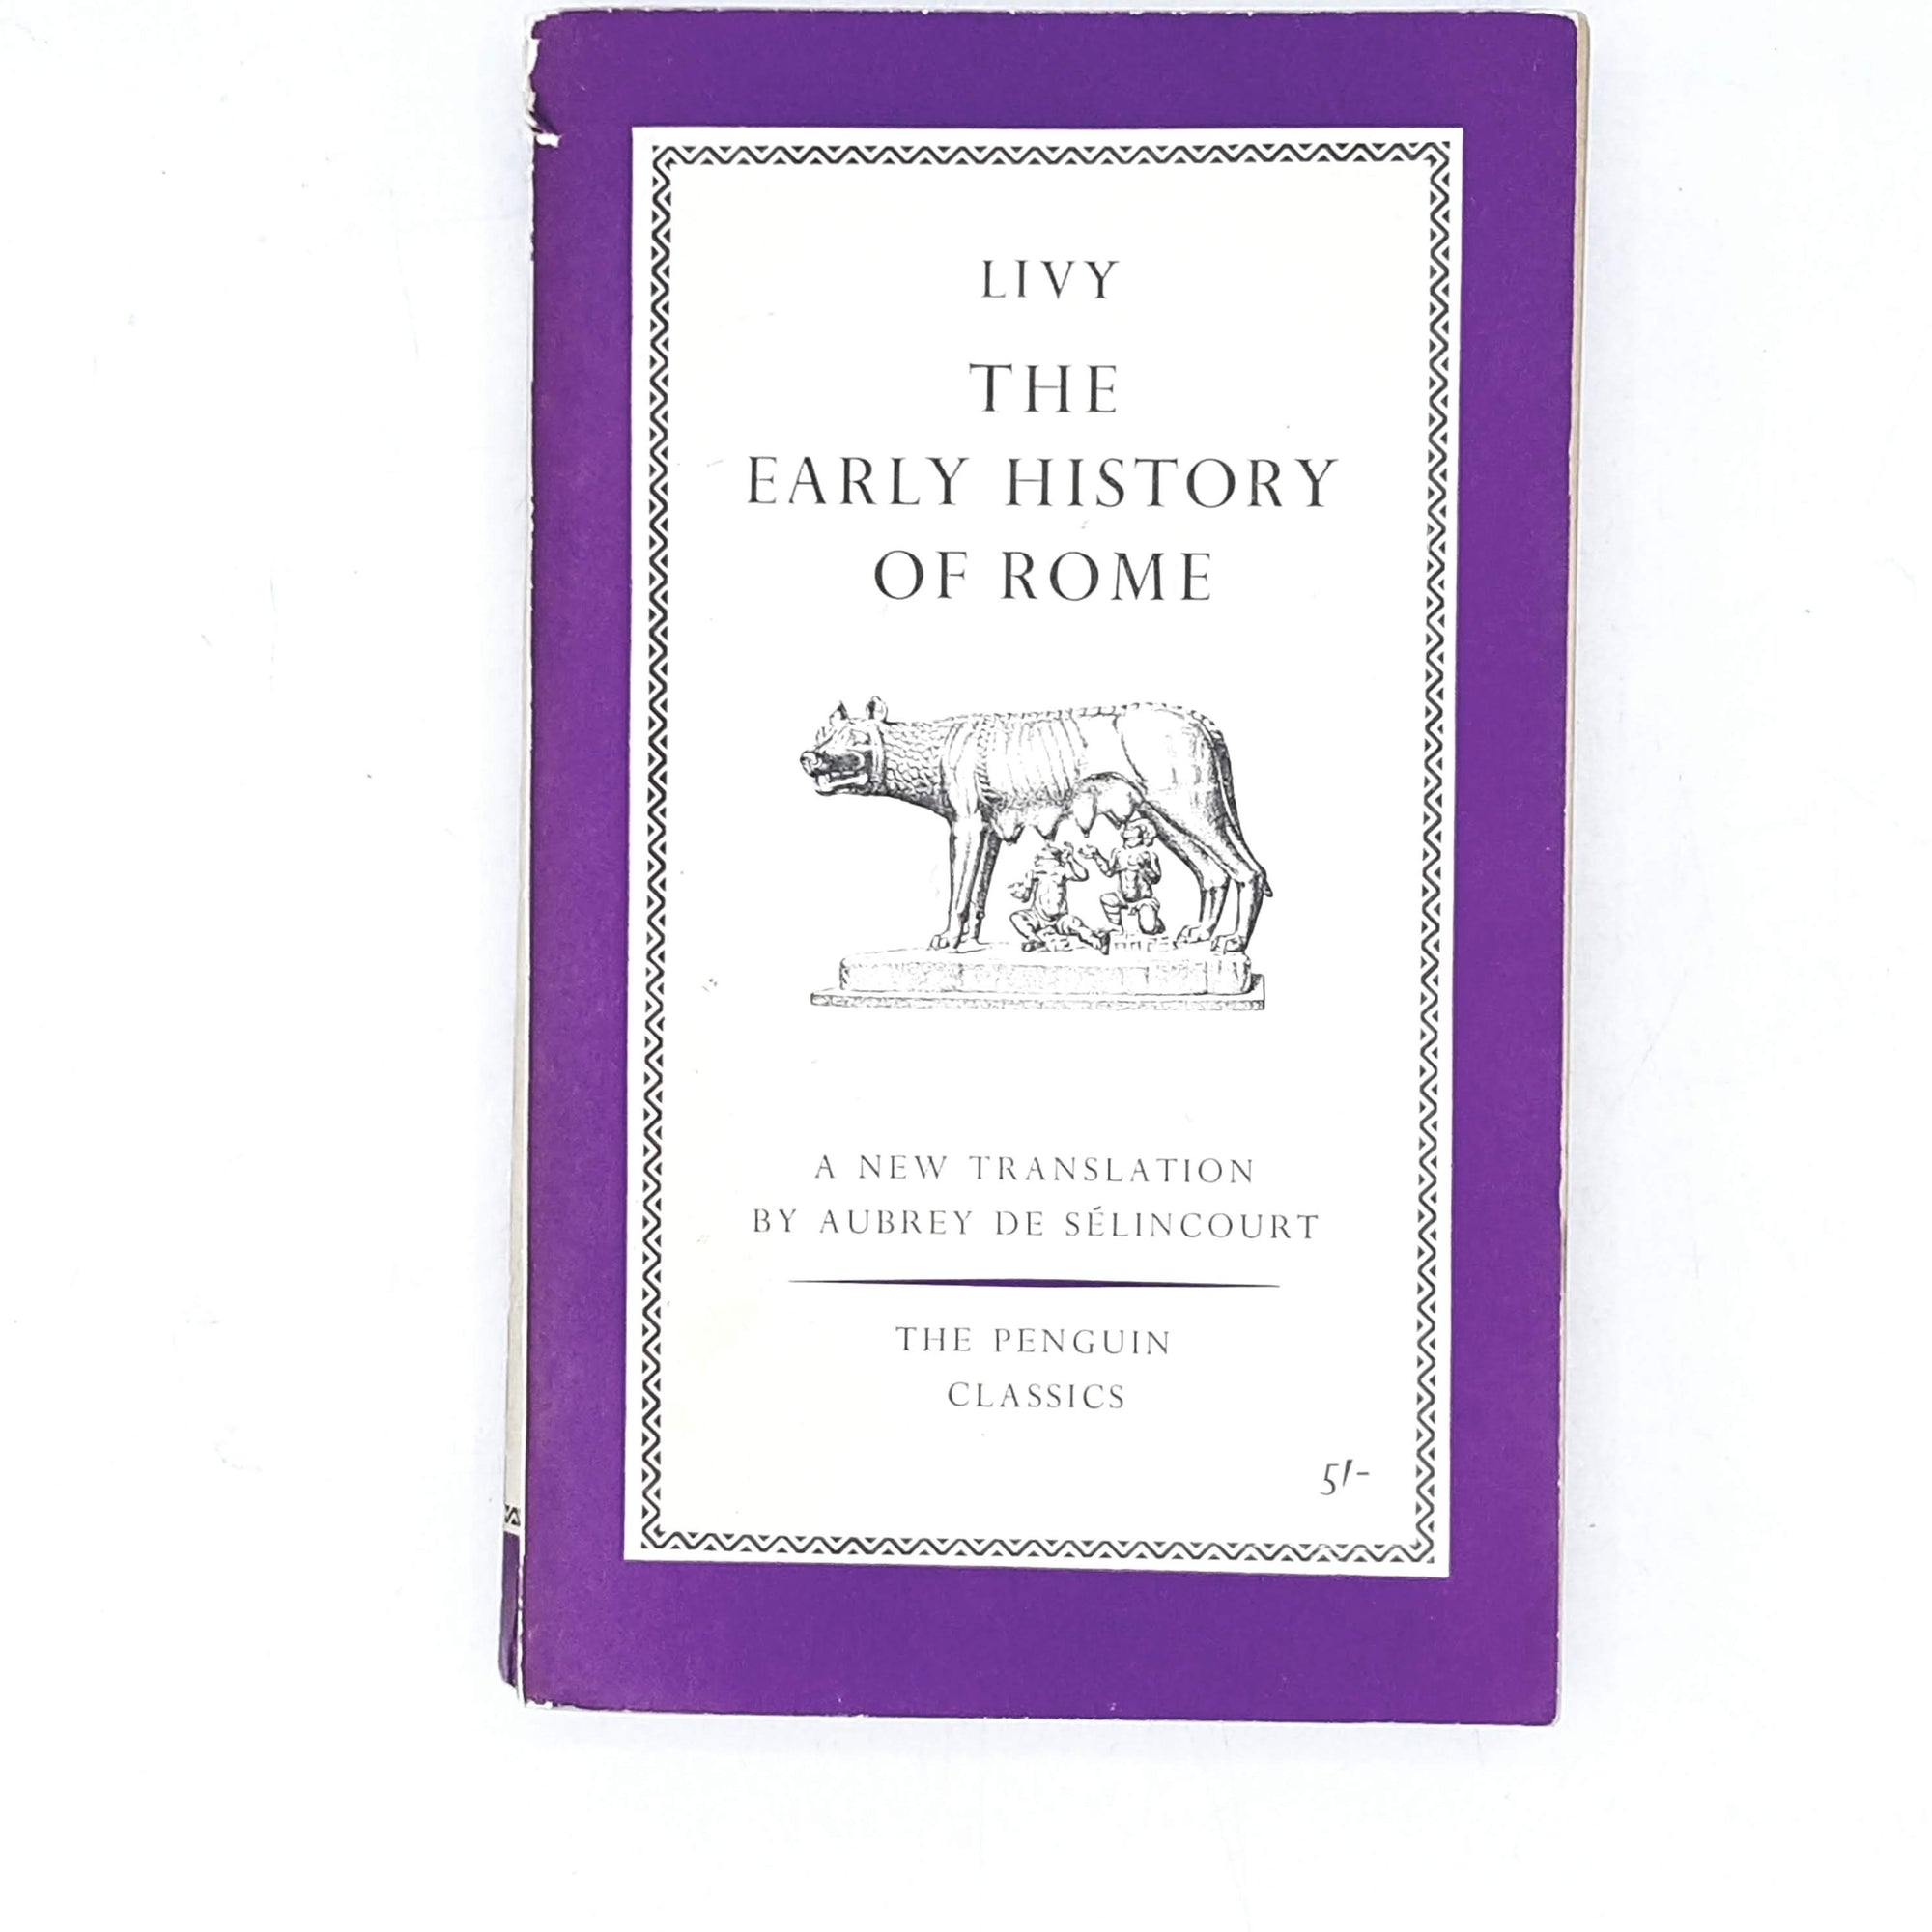 First Edition The Early History of Rome: Books I-V by Livy 1960